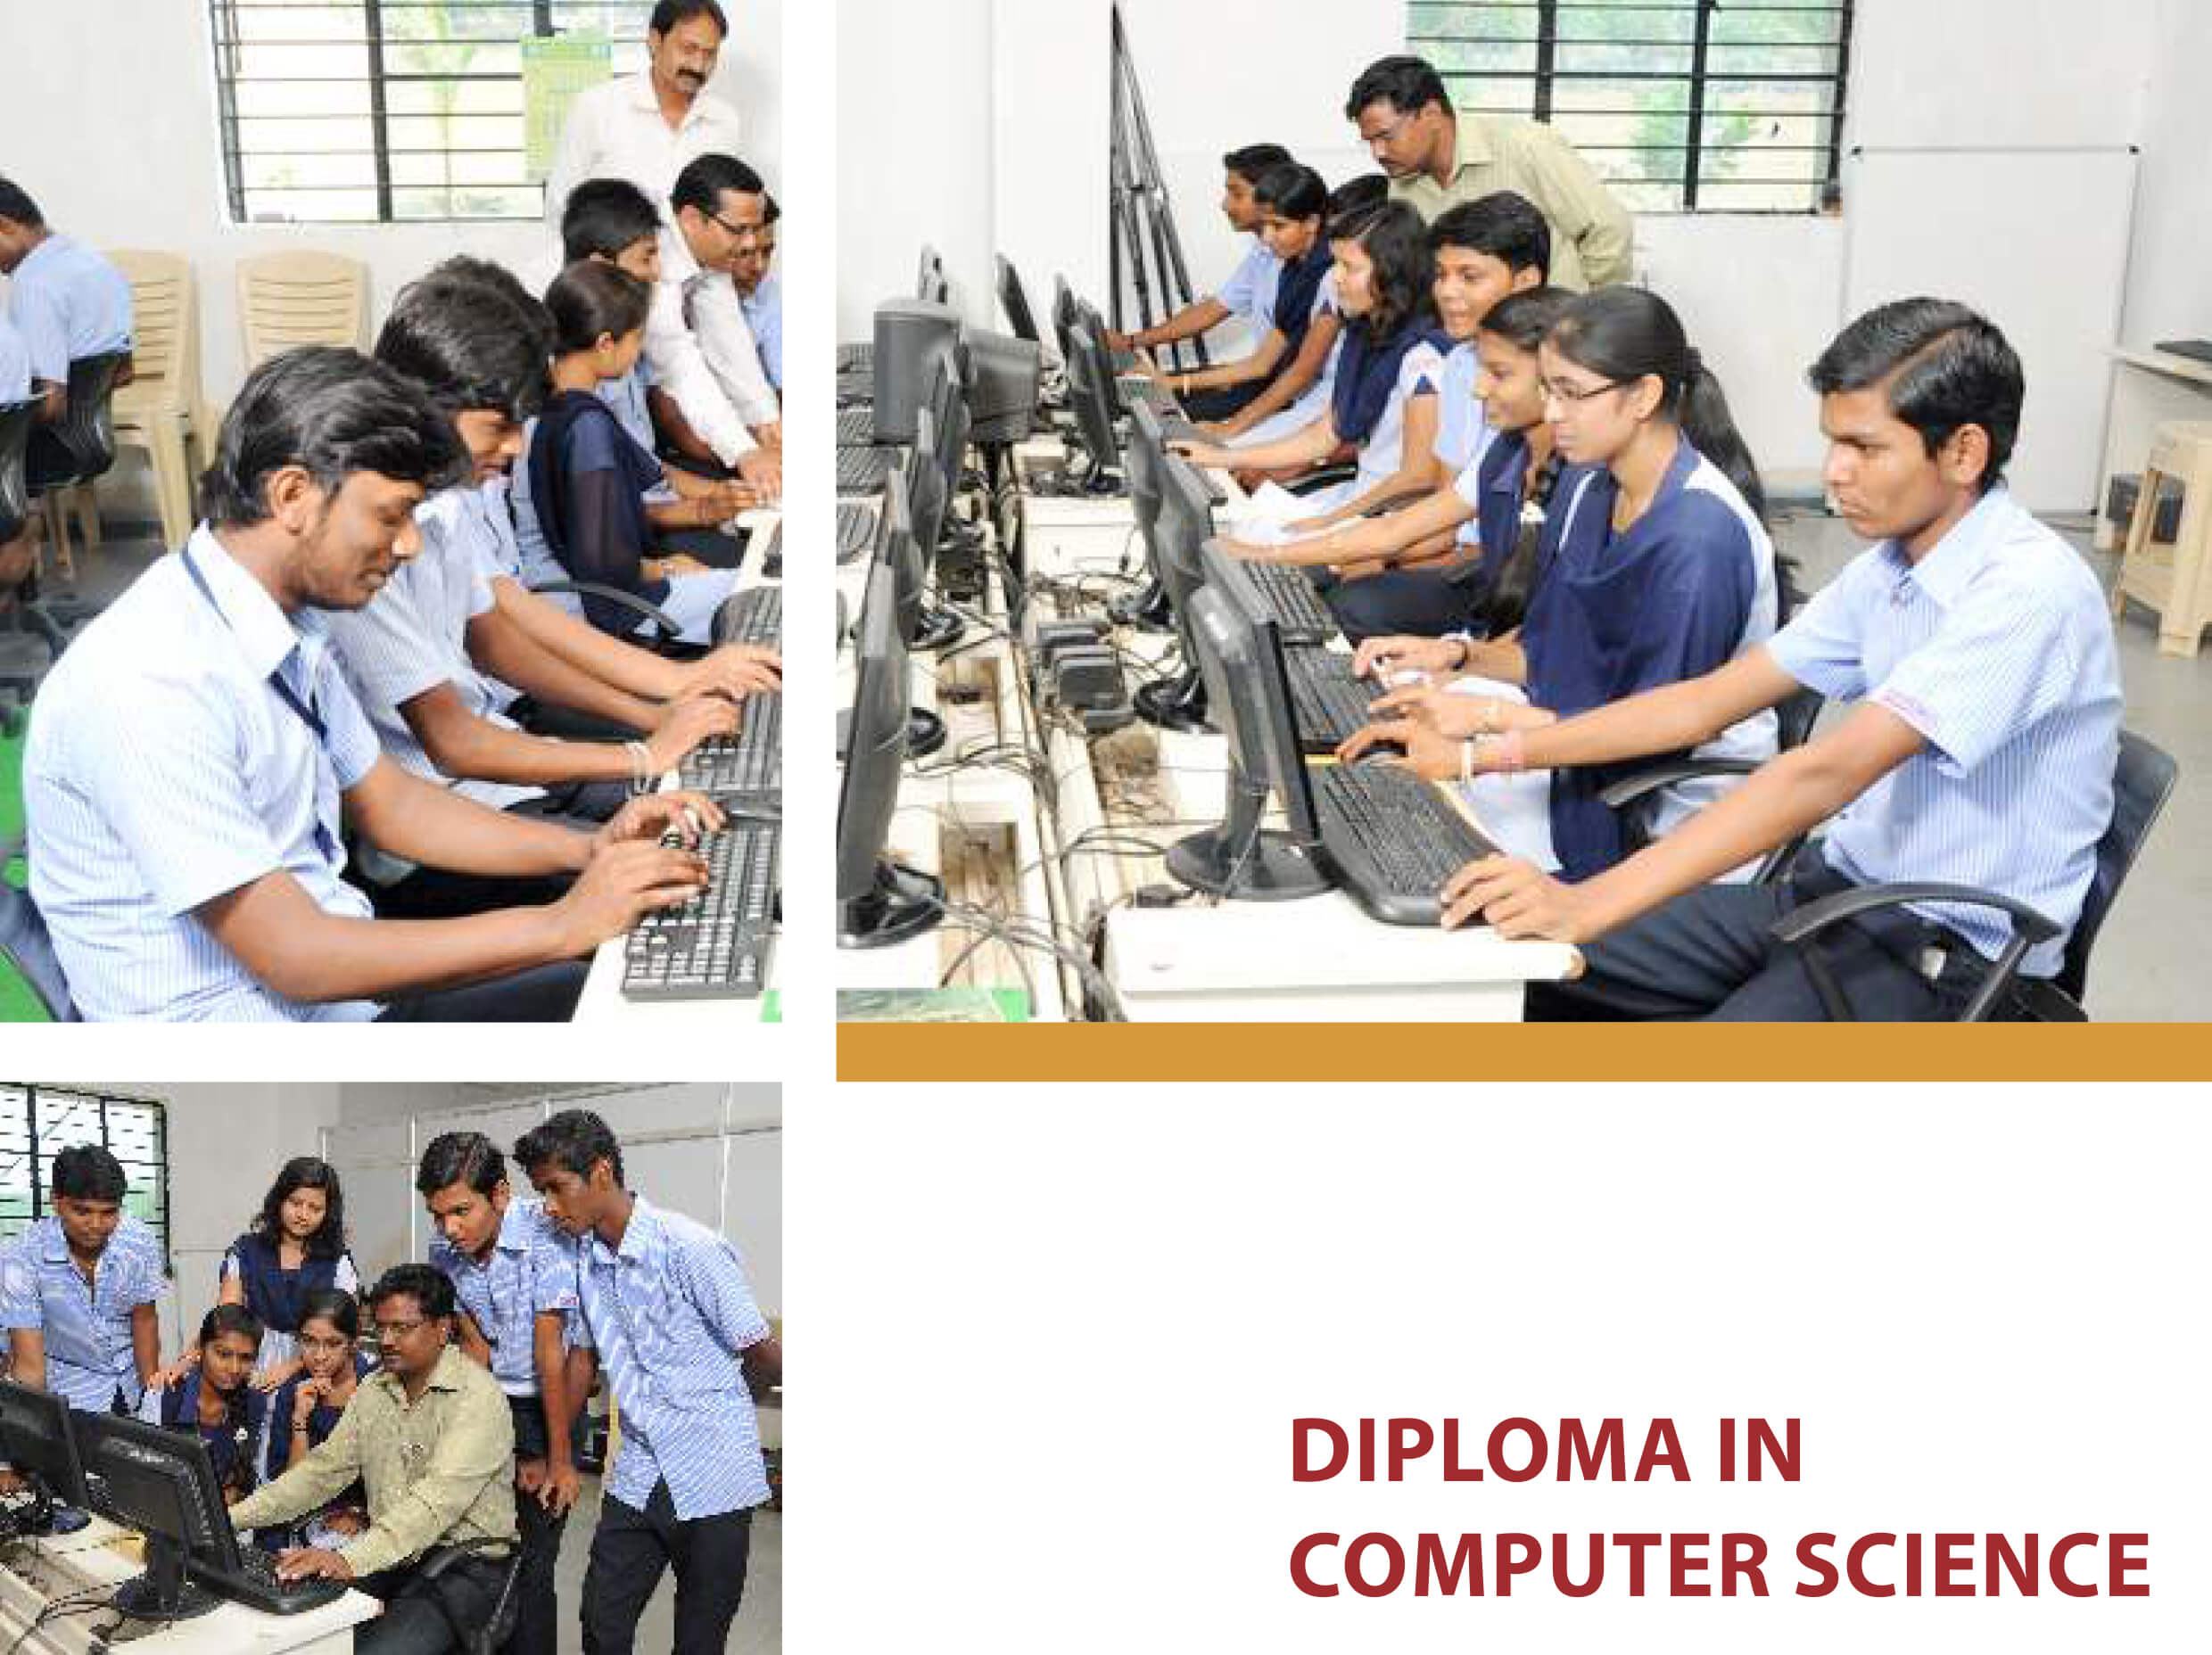 Pictures about computer science in diploma jobs after